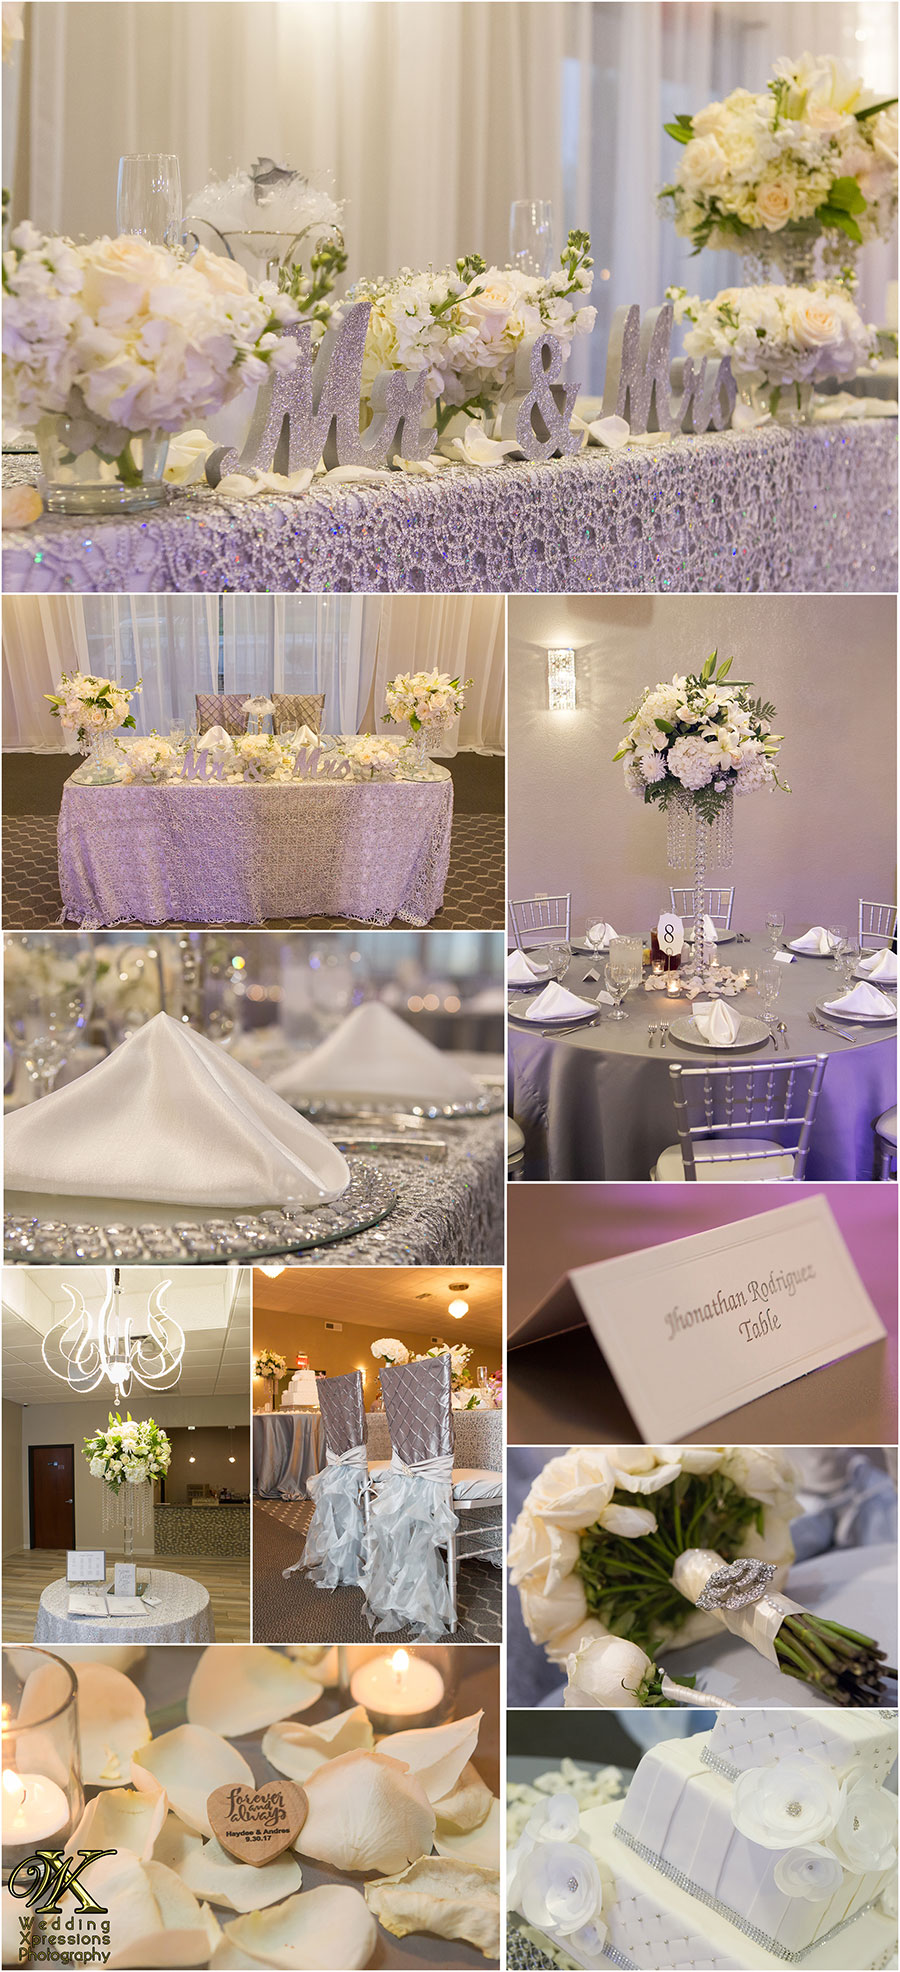 wedding details of Grace Gardens